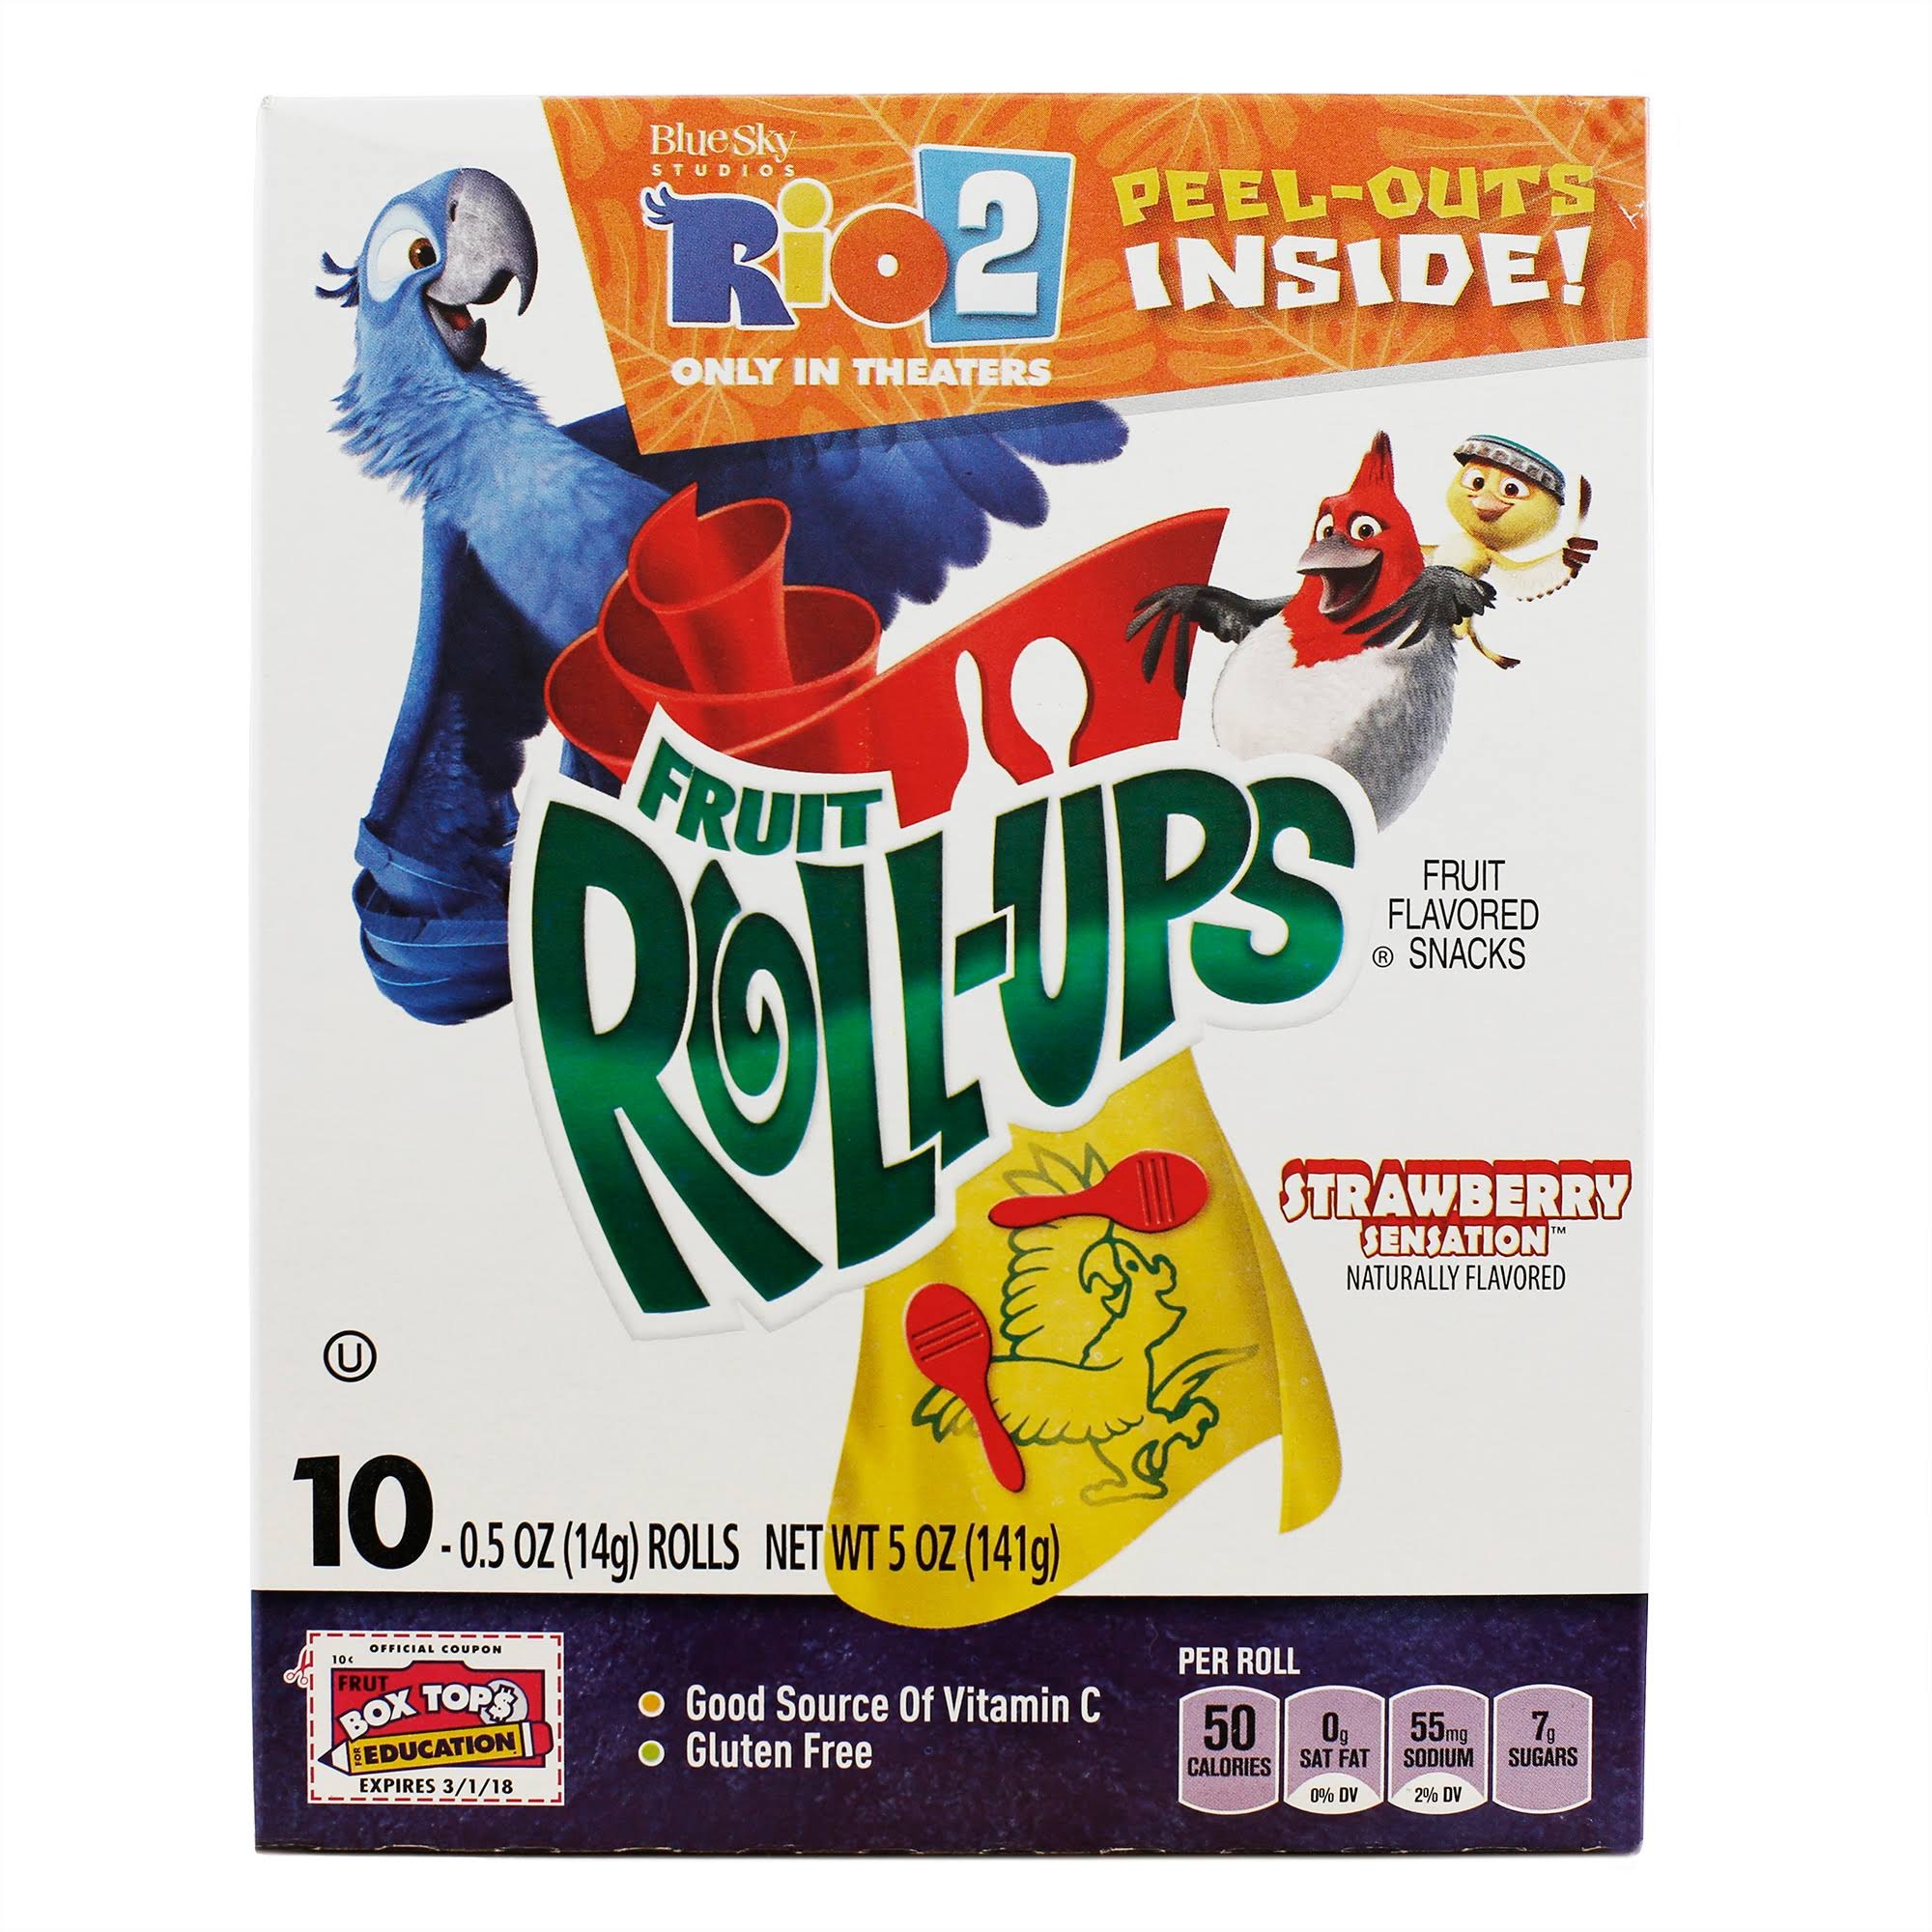 Fruit Roll-Ups Strawberry Sensation Fruit Flavored Snacks - 0.5oz, 10ct